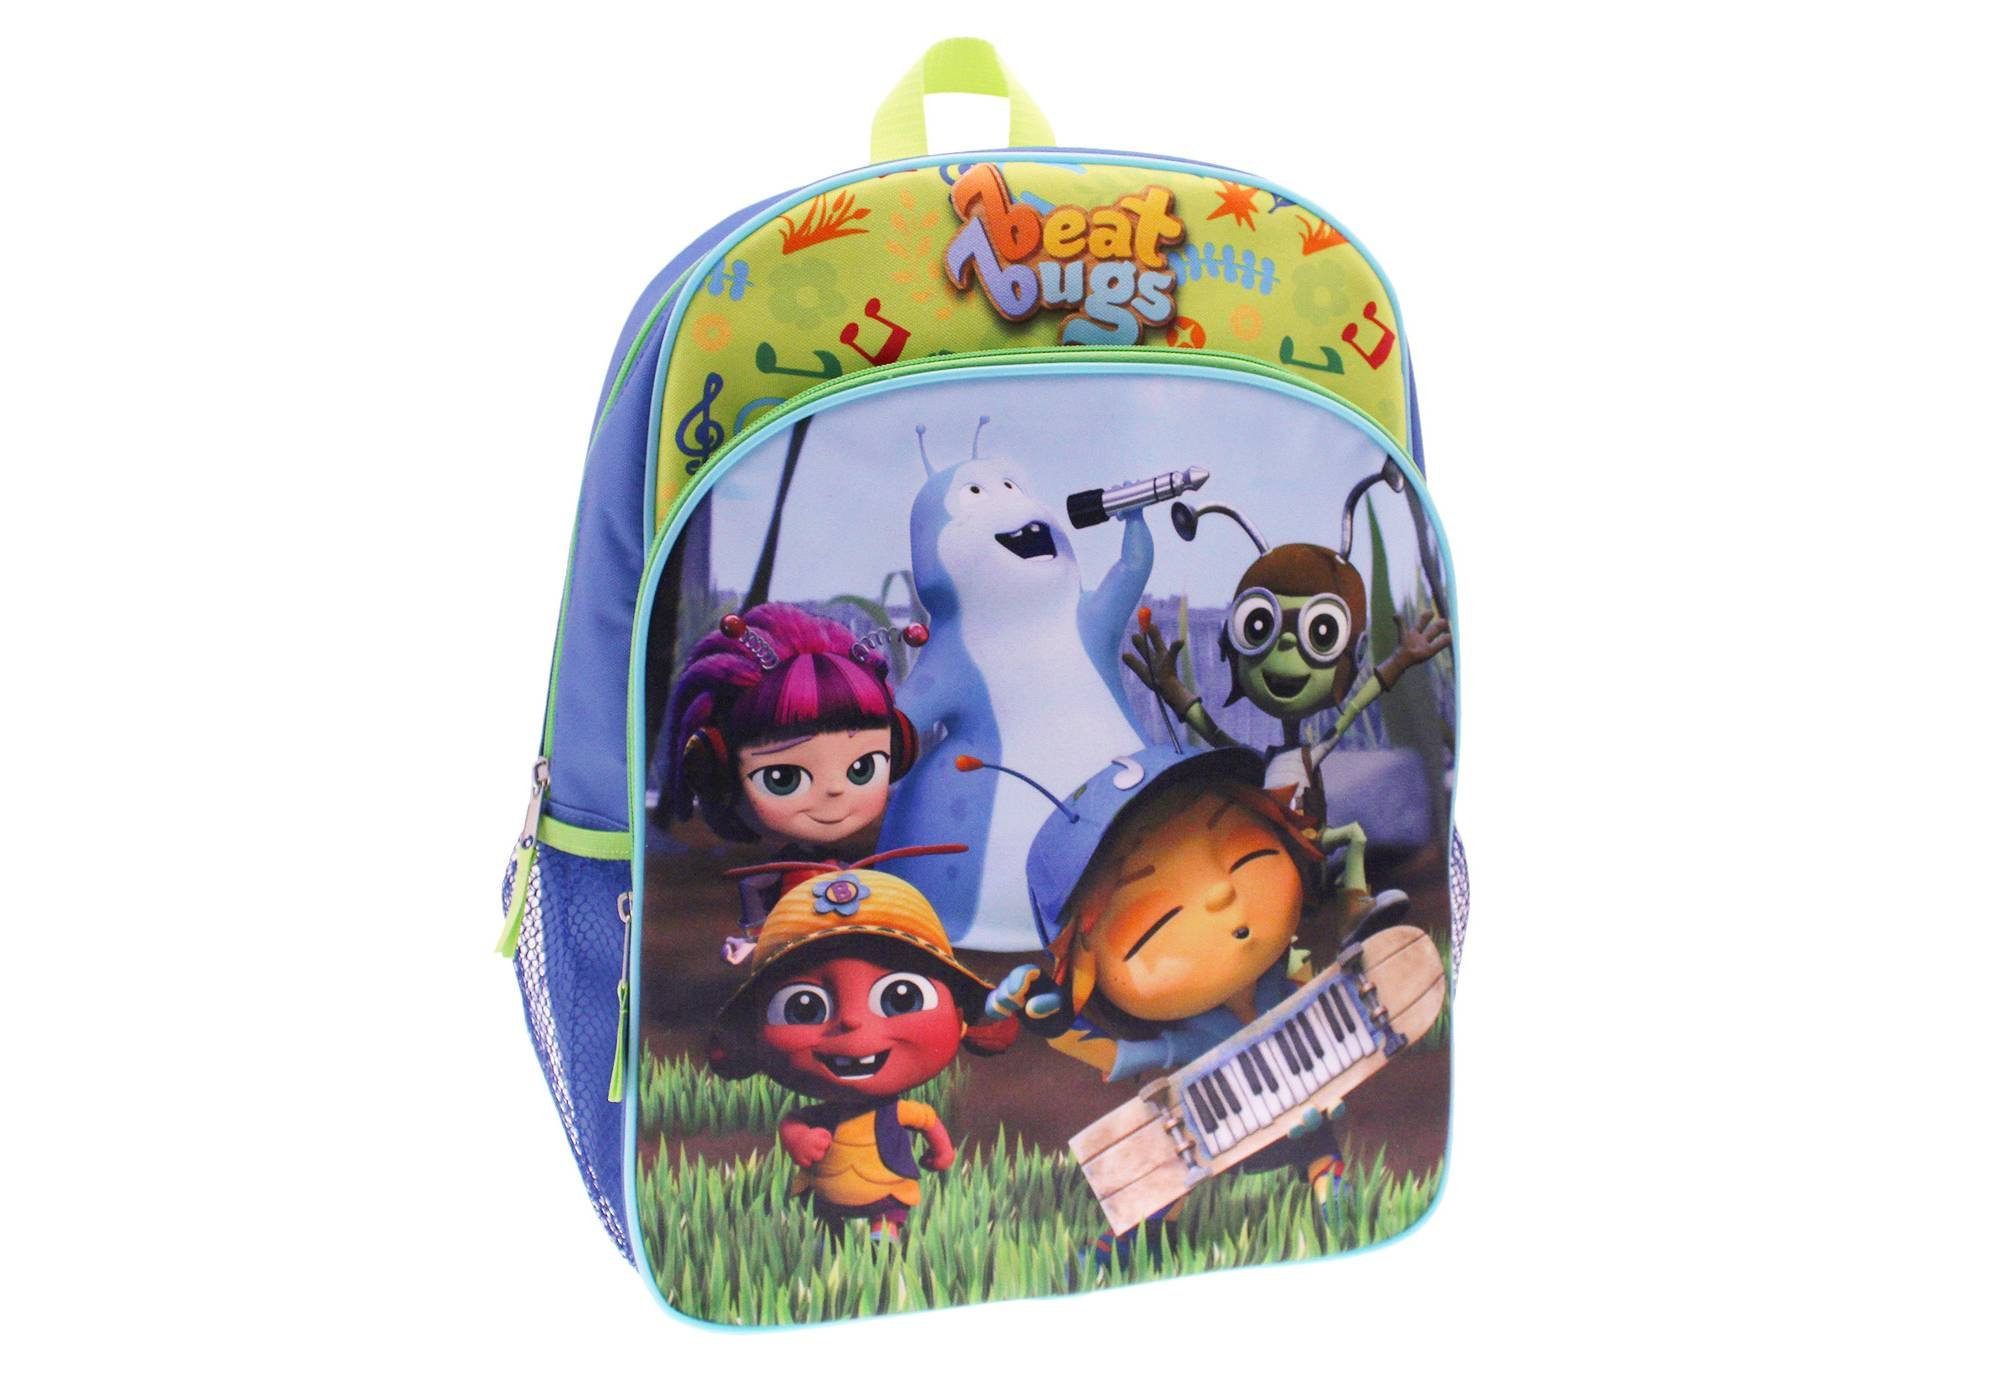 Netflix Beat Bugs Backpack Full Size All You Need is Love